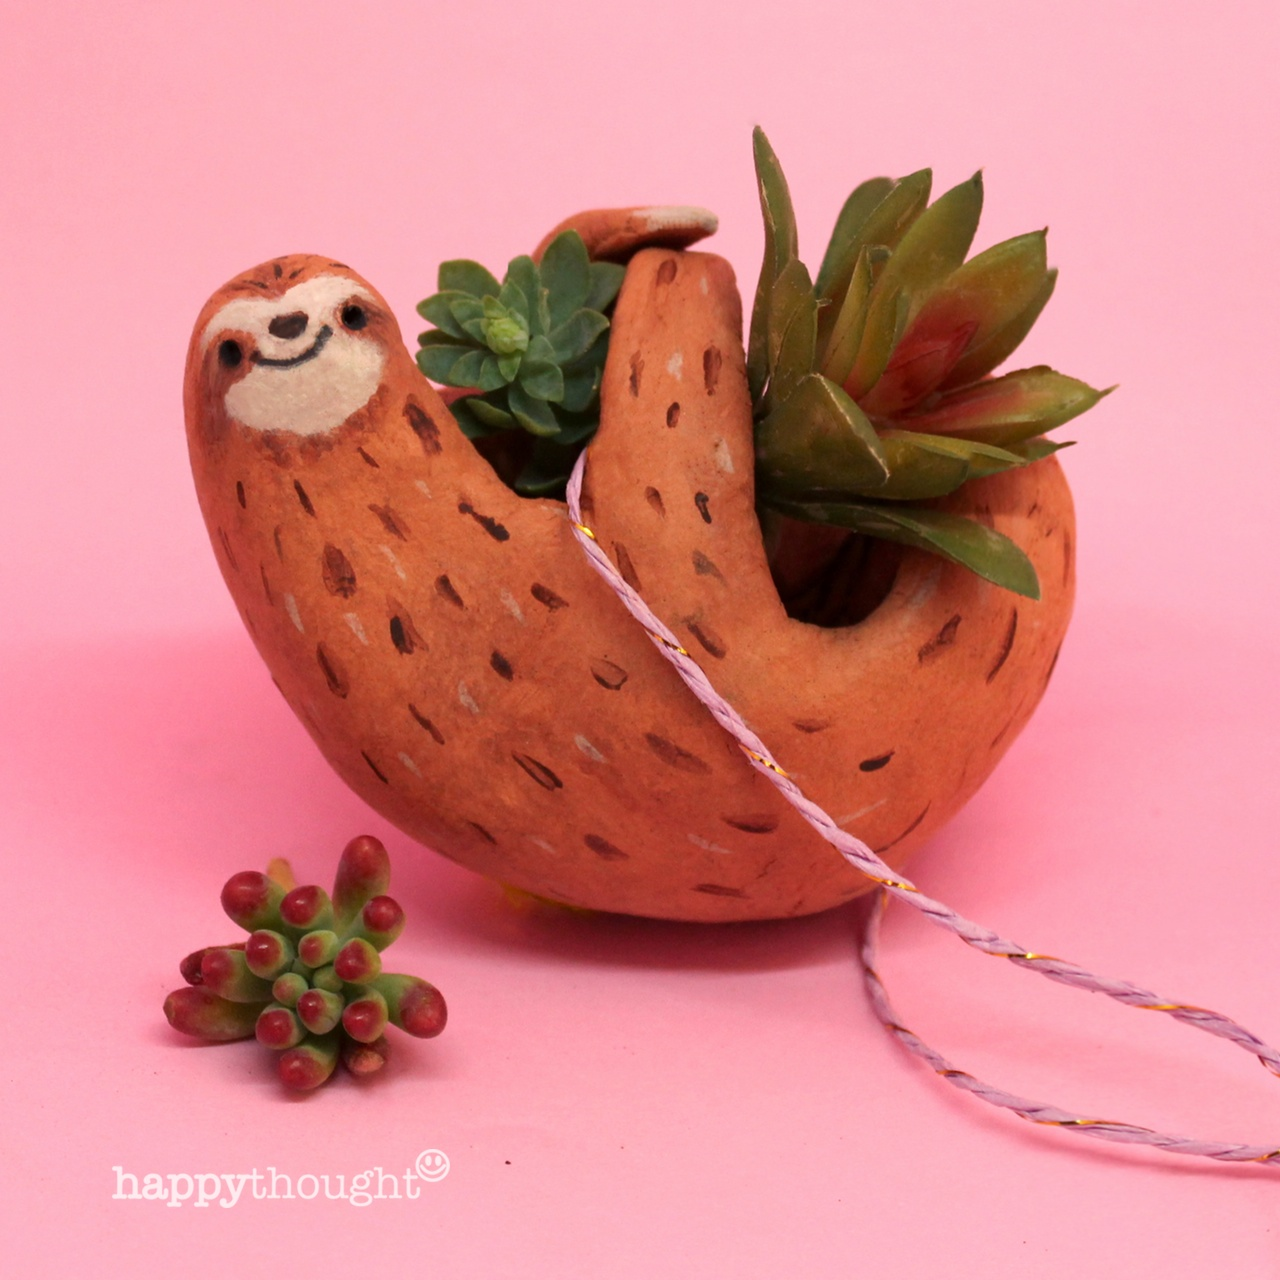 Make a place for your succulent plants with these sloth craft diy plant holders.